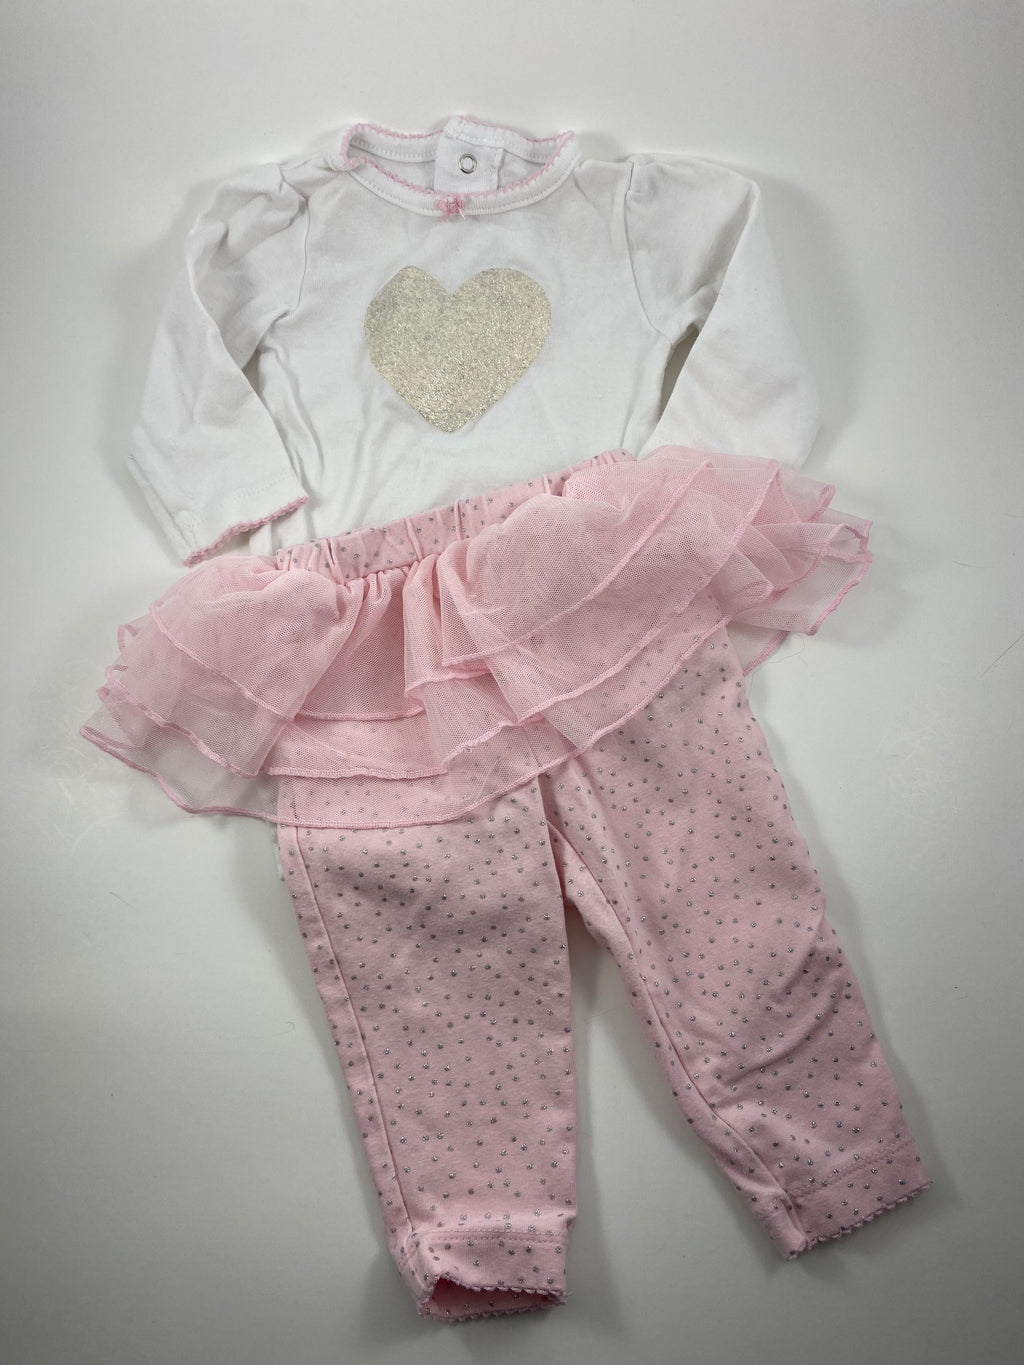 Girl's Long Sleeve Outfit - Size 6-12mo